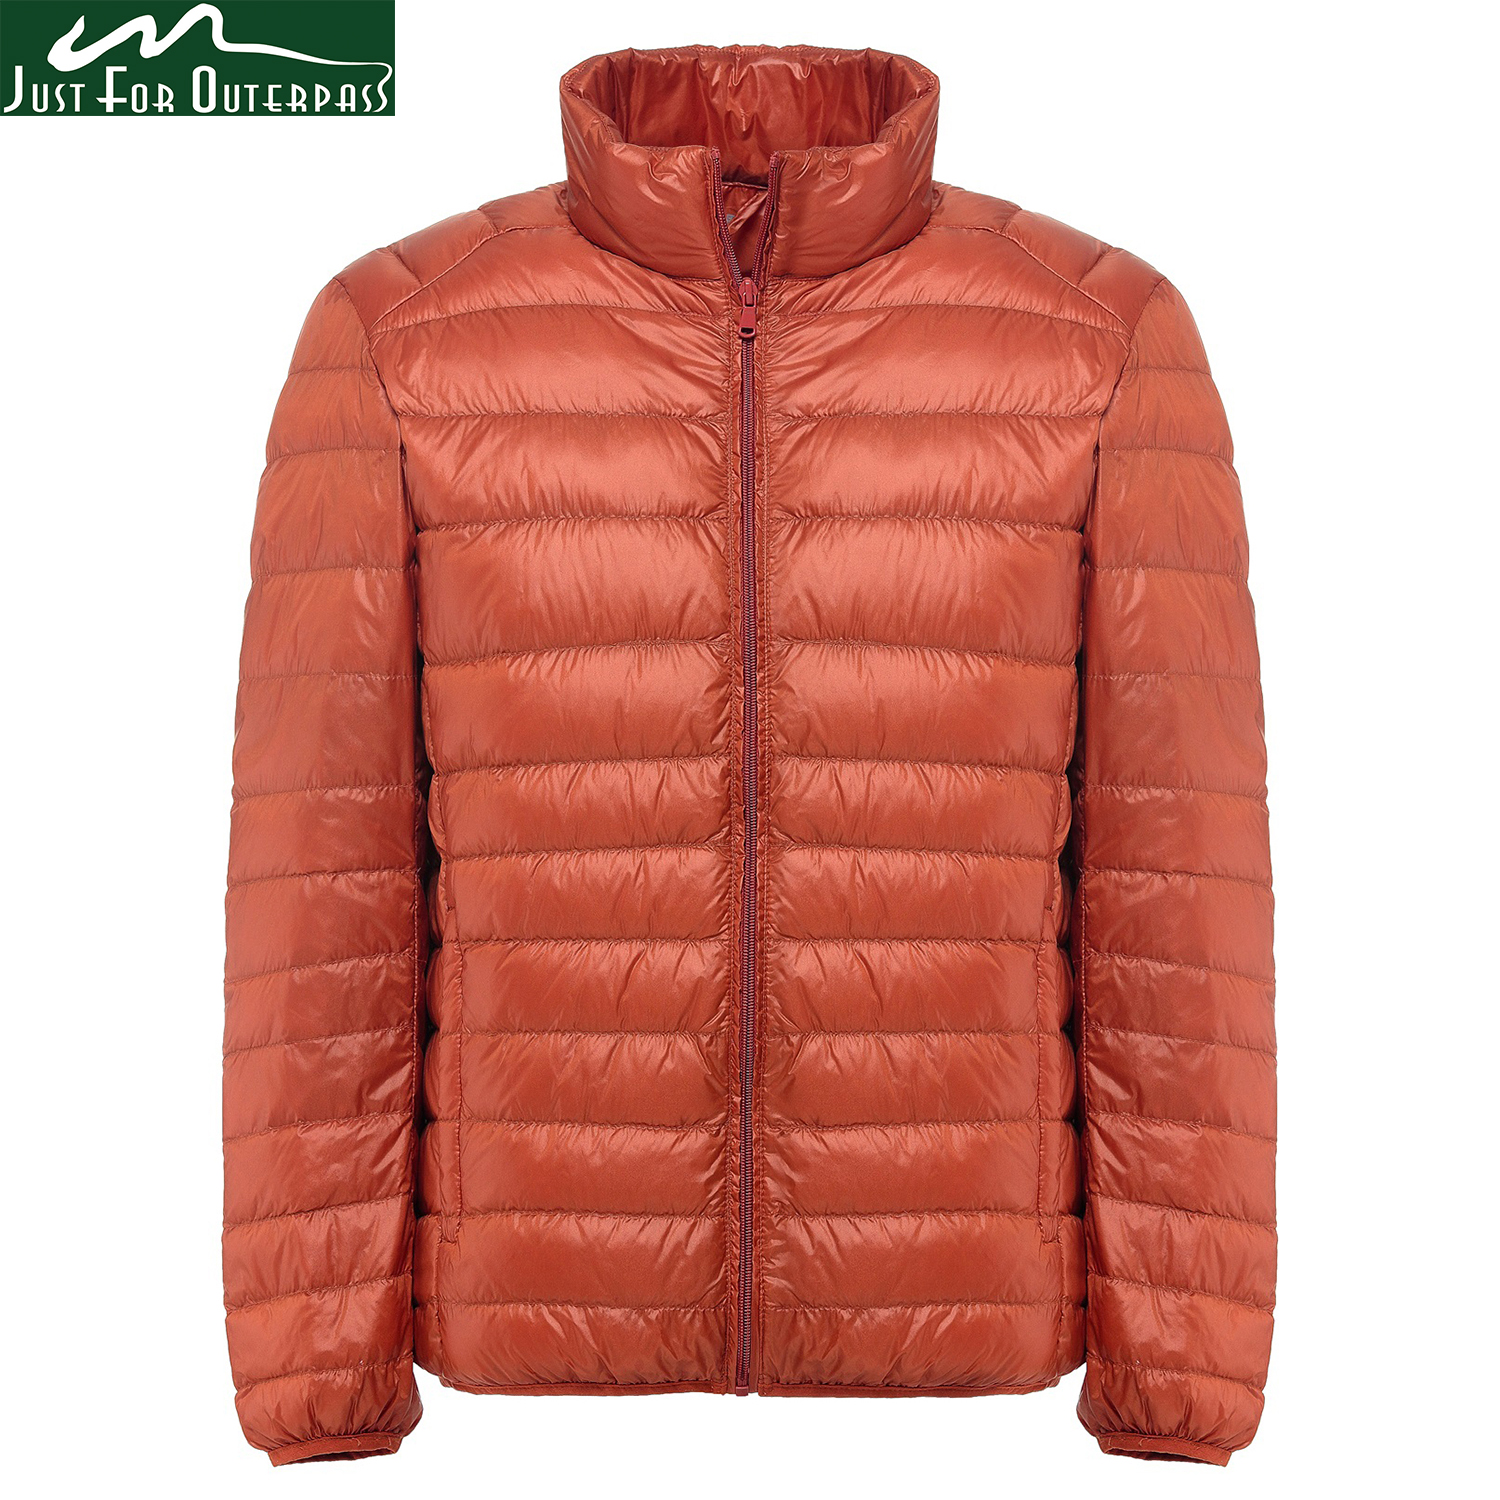 Galleria down jacket man all Ingrosso - Acquista a Basso Prezzo down jacket  man Lotti su Aliexpress.com 1796eb52ac5